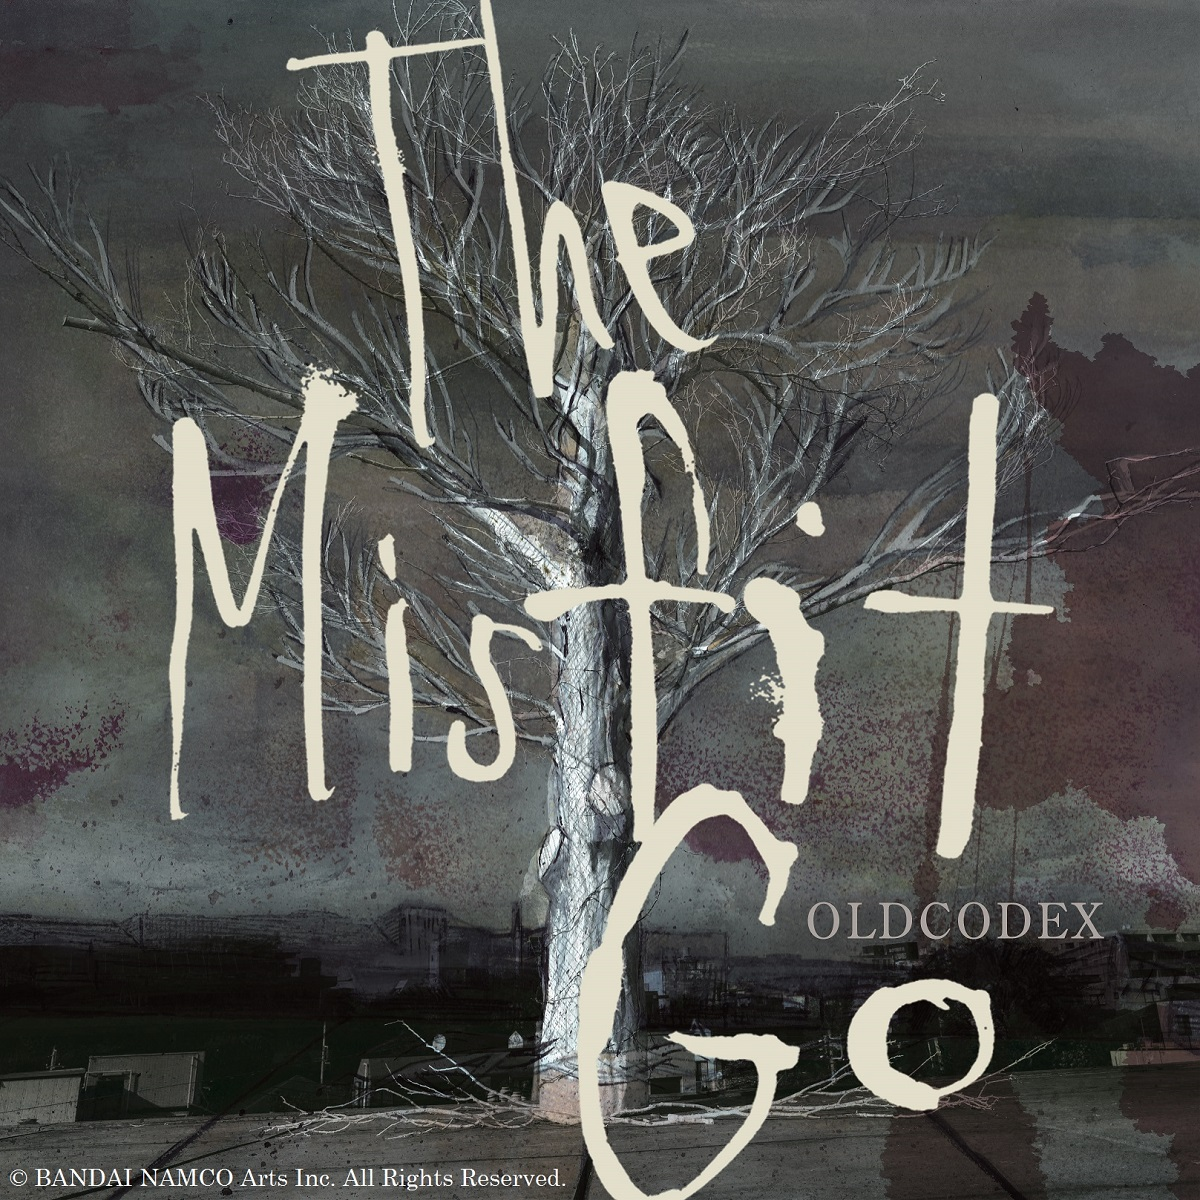 The Misfit Go Arata: The Legend OLDCODEX CD (Import)